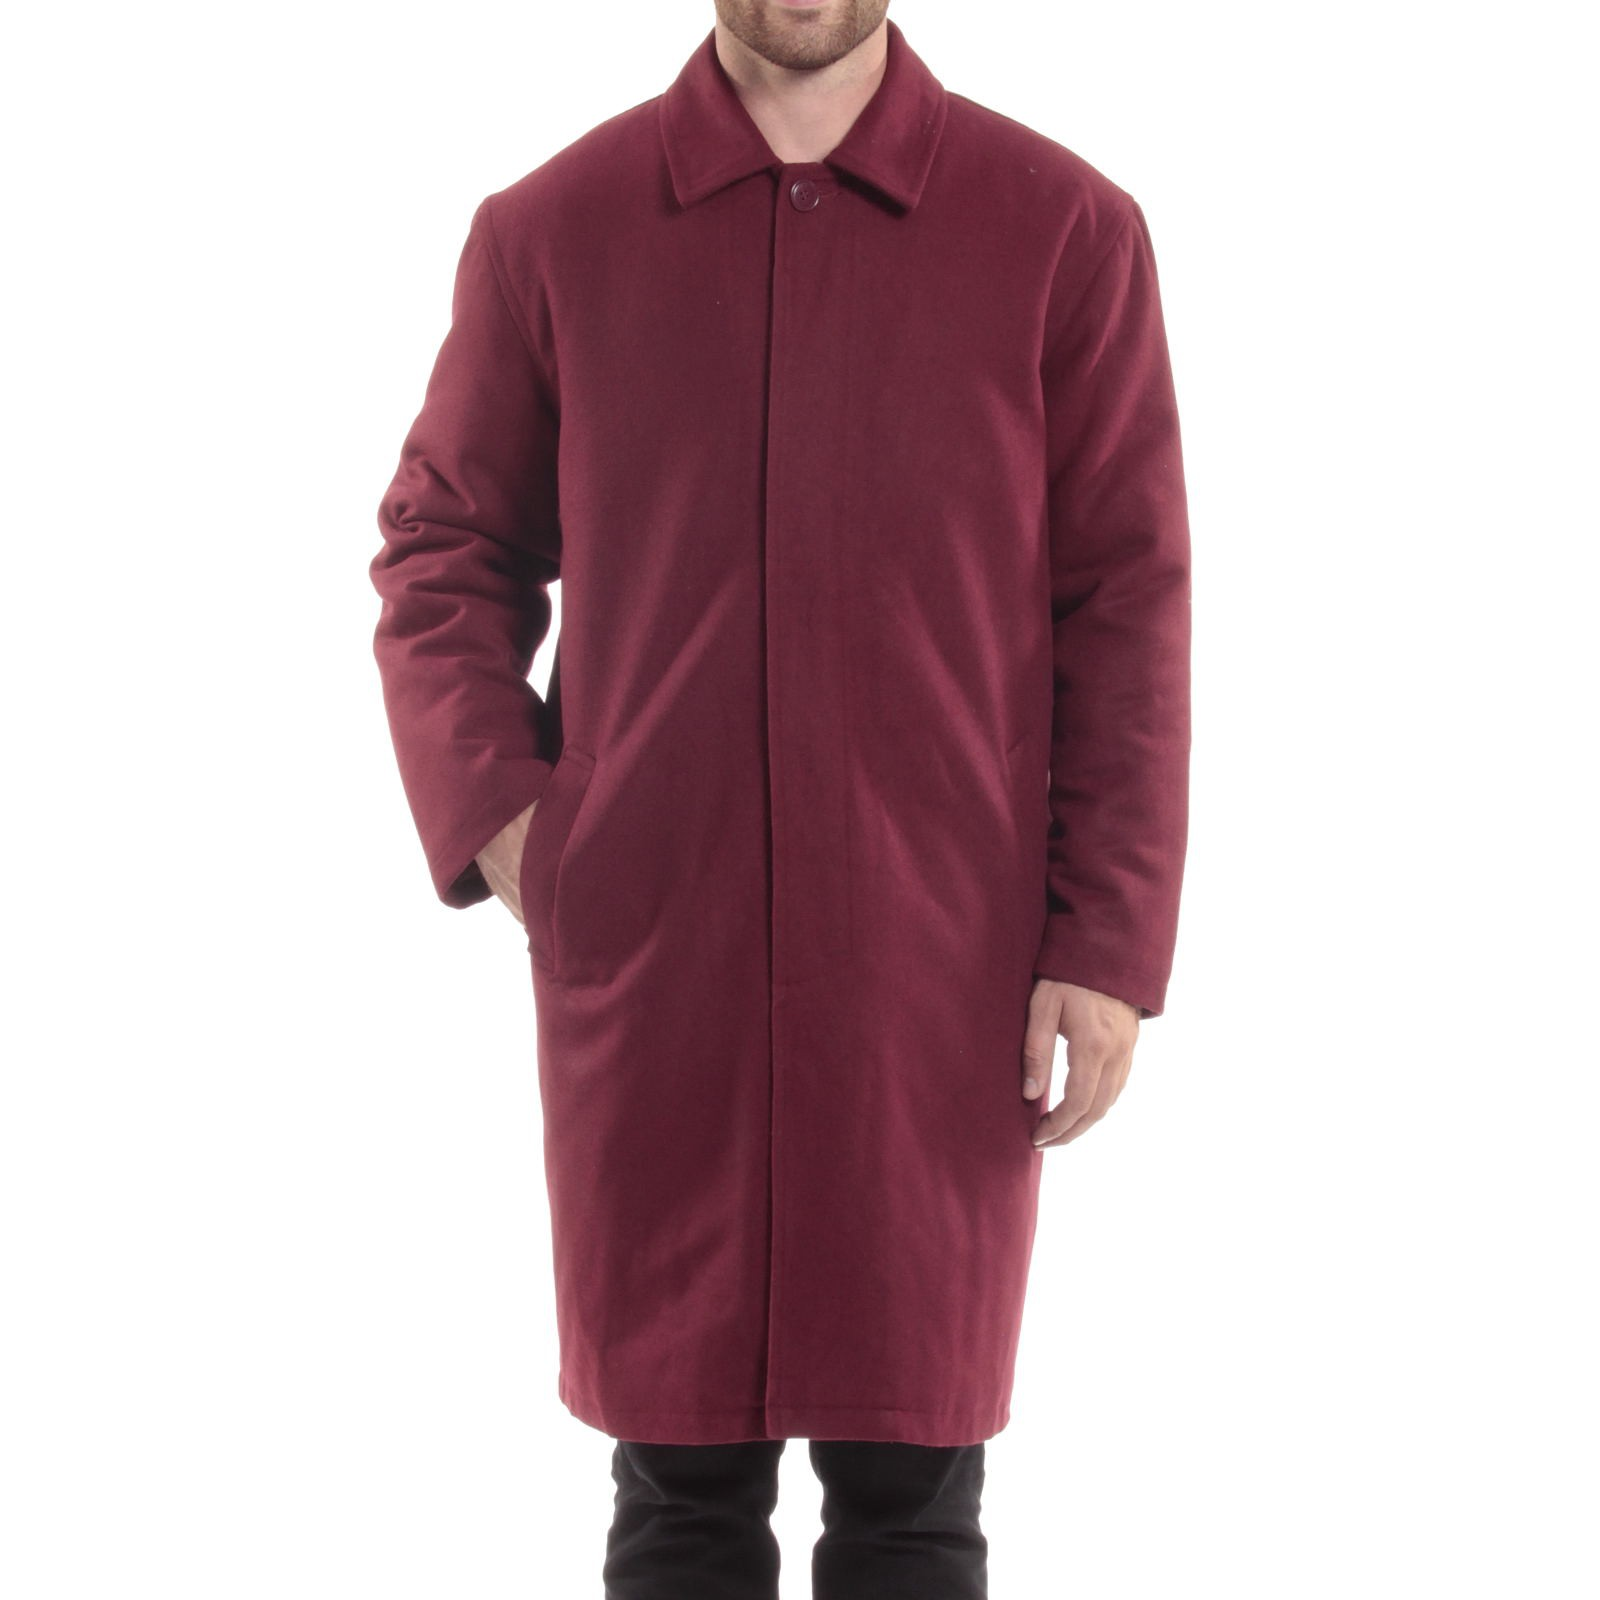 Alpine-Swiss-Mens-Zach-Knee-Length-Jacket-Top-Coat-Trench-Wool-Blend-Overcoat thumbnail 30